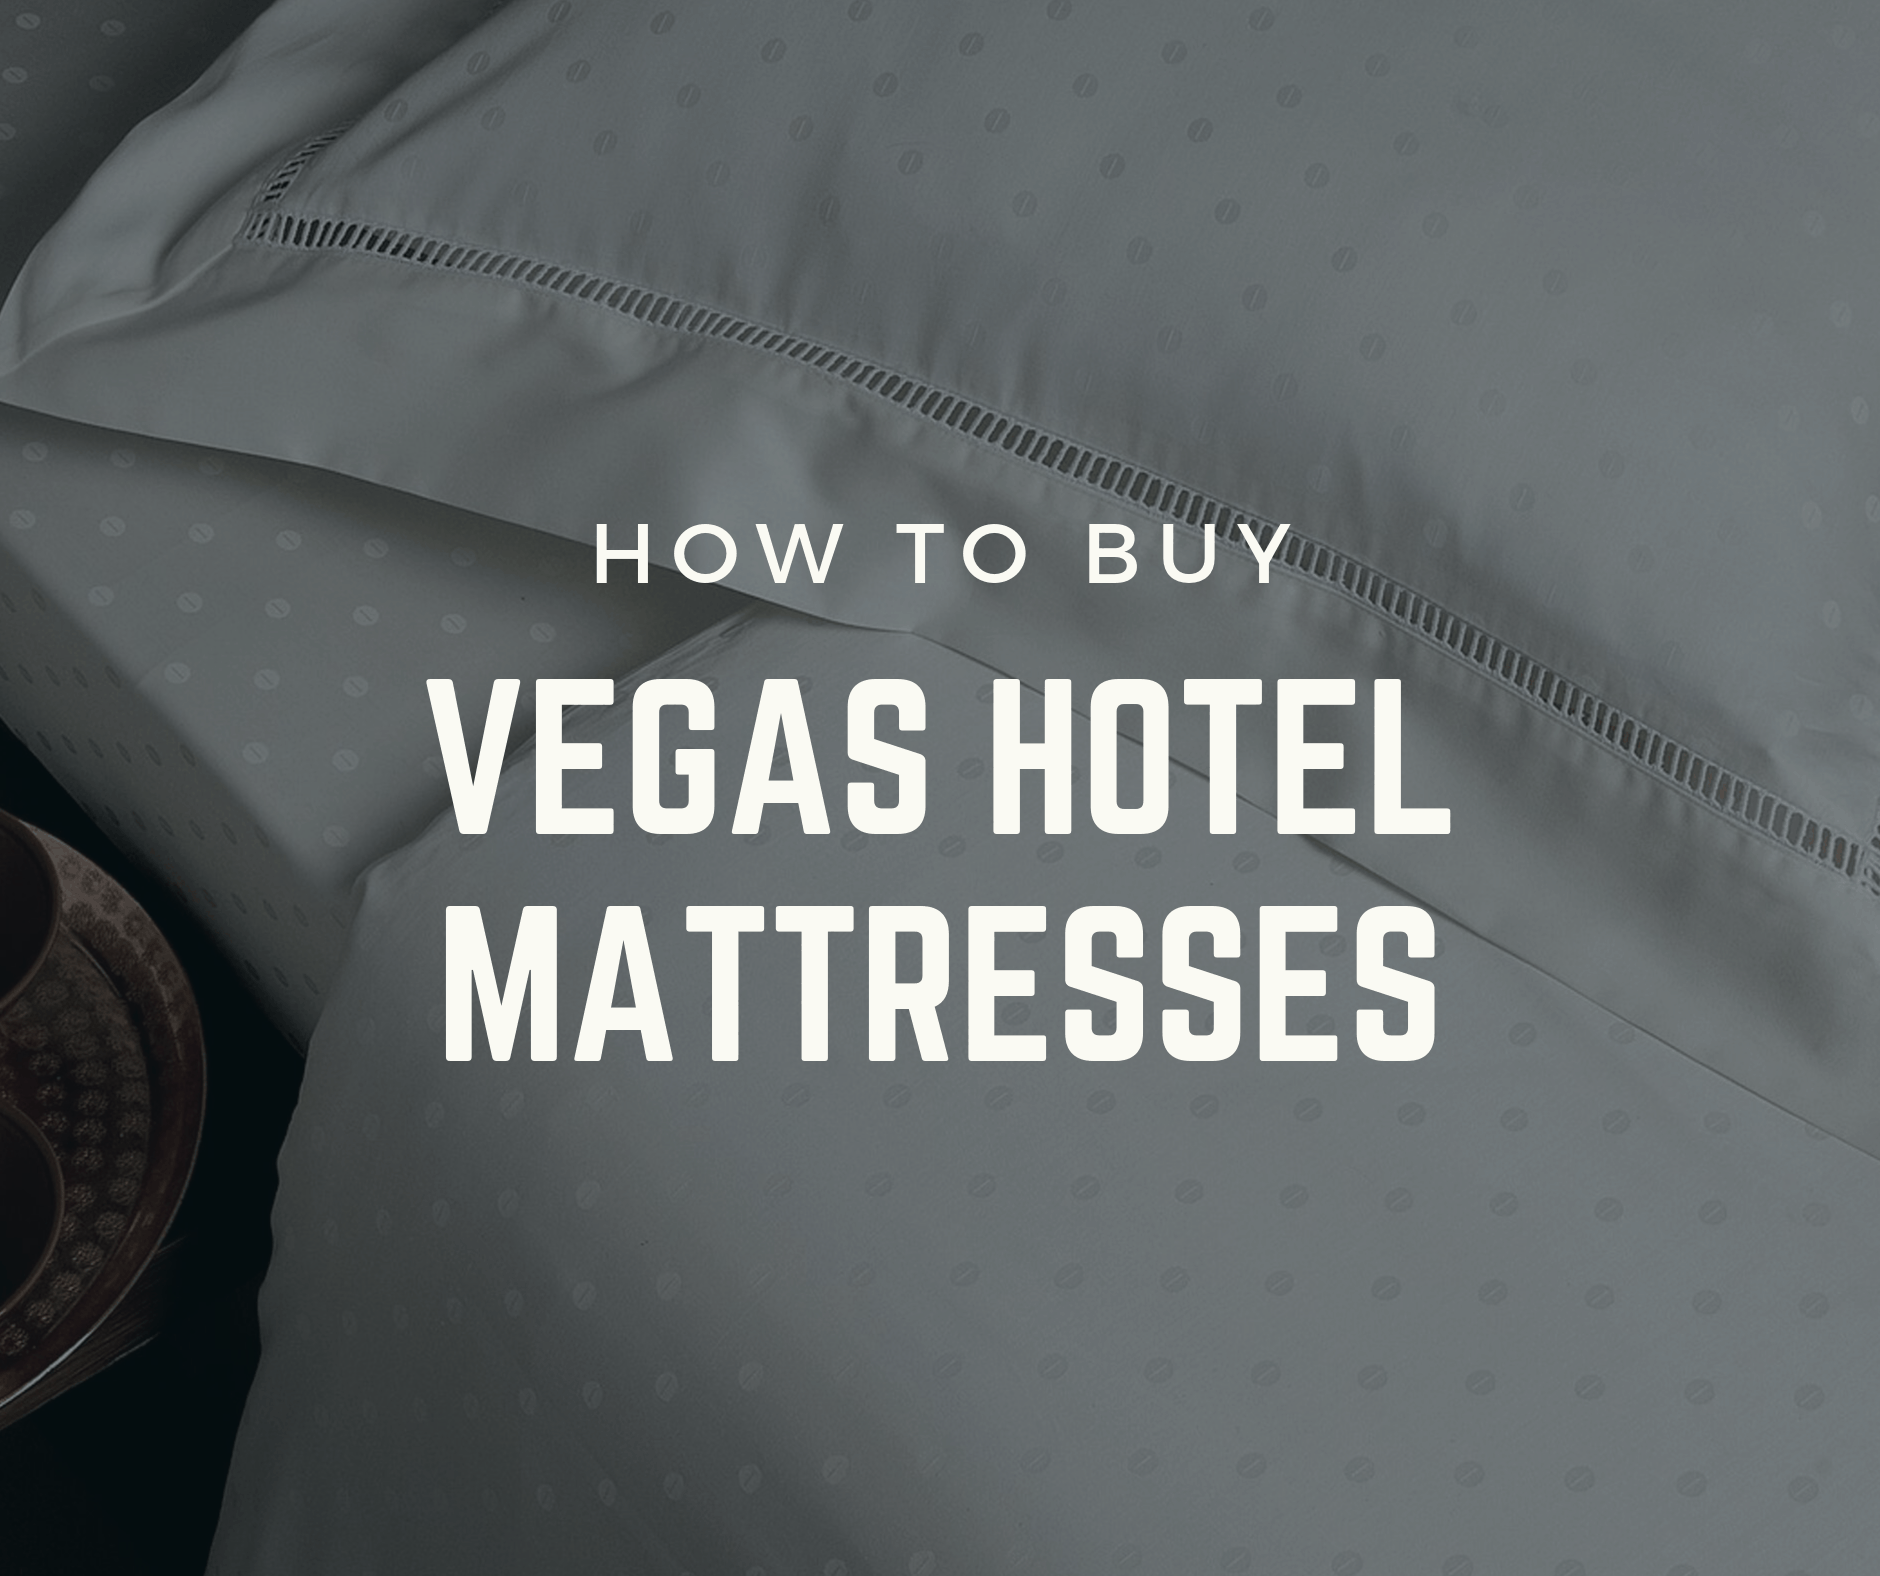 Yes, You Can Buy That Mattress You Slept on in Vegas